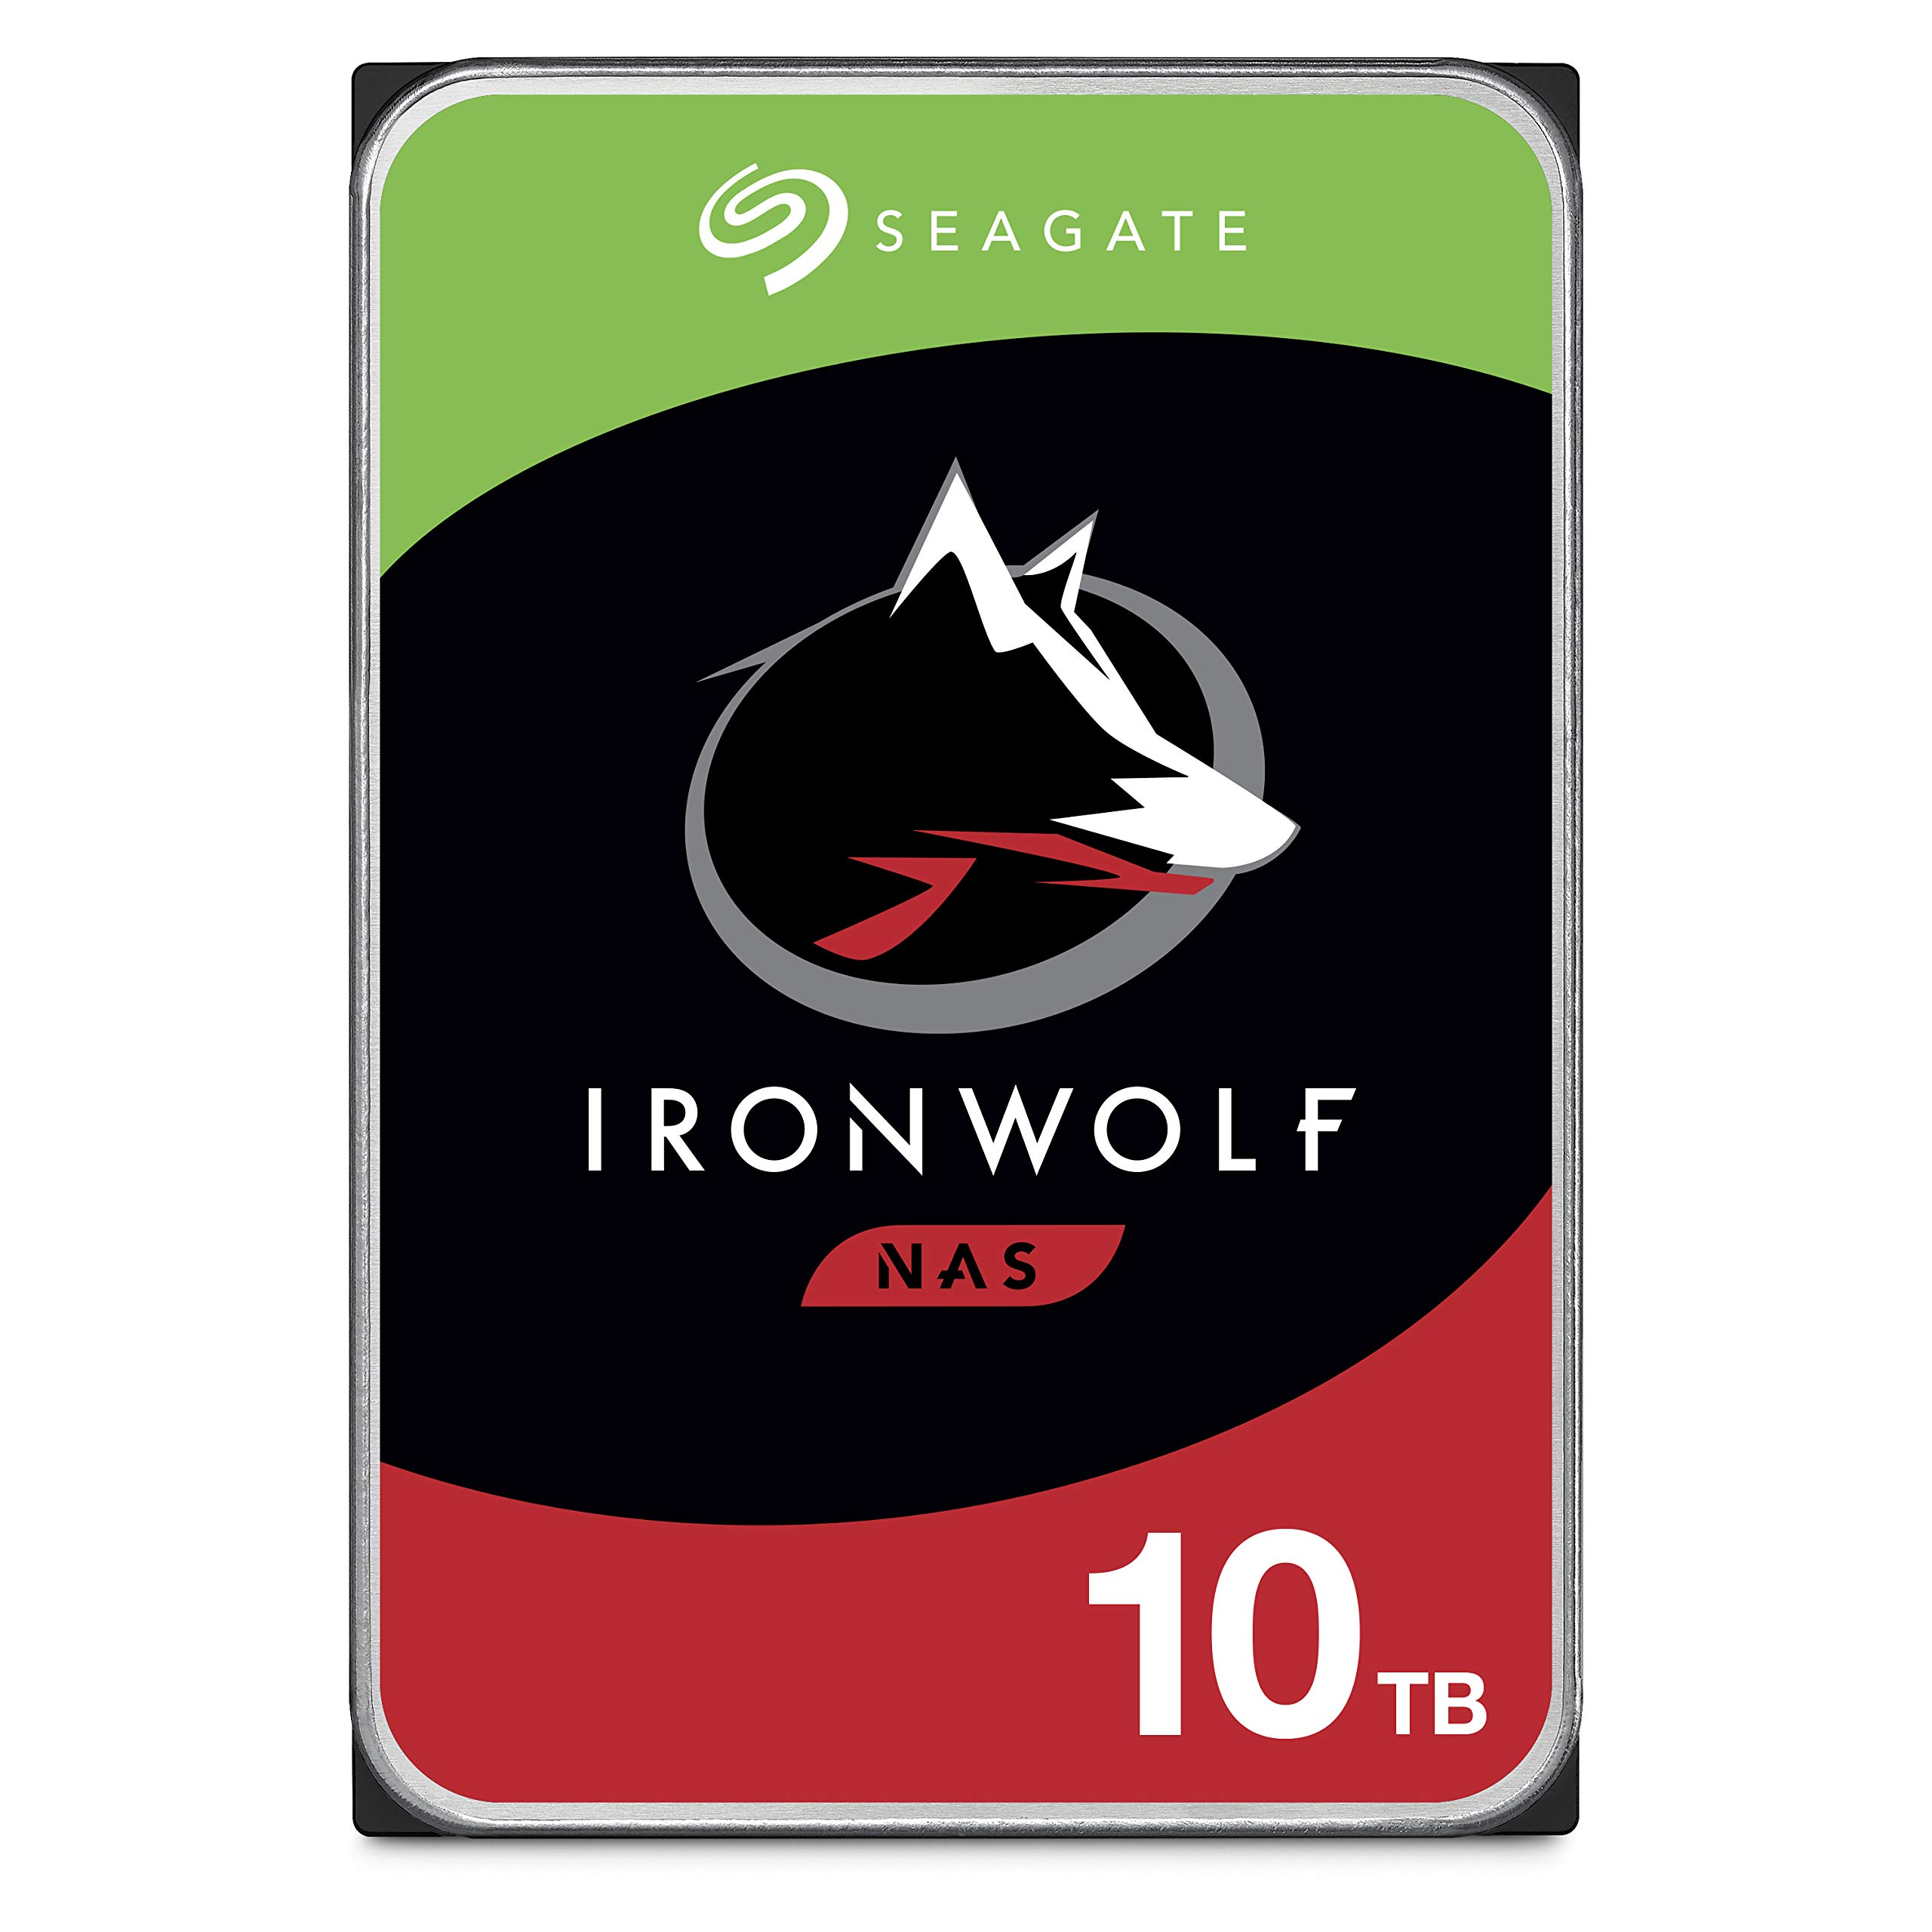 HDD 10TB SATA Seagate IronWolf 10TB NAS 3.5in 6Gb/s 7200 RPM